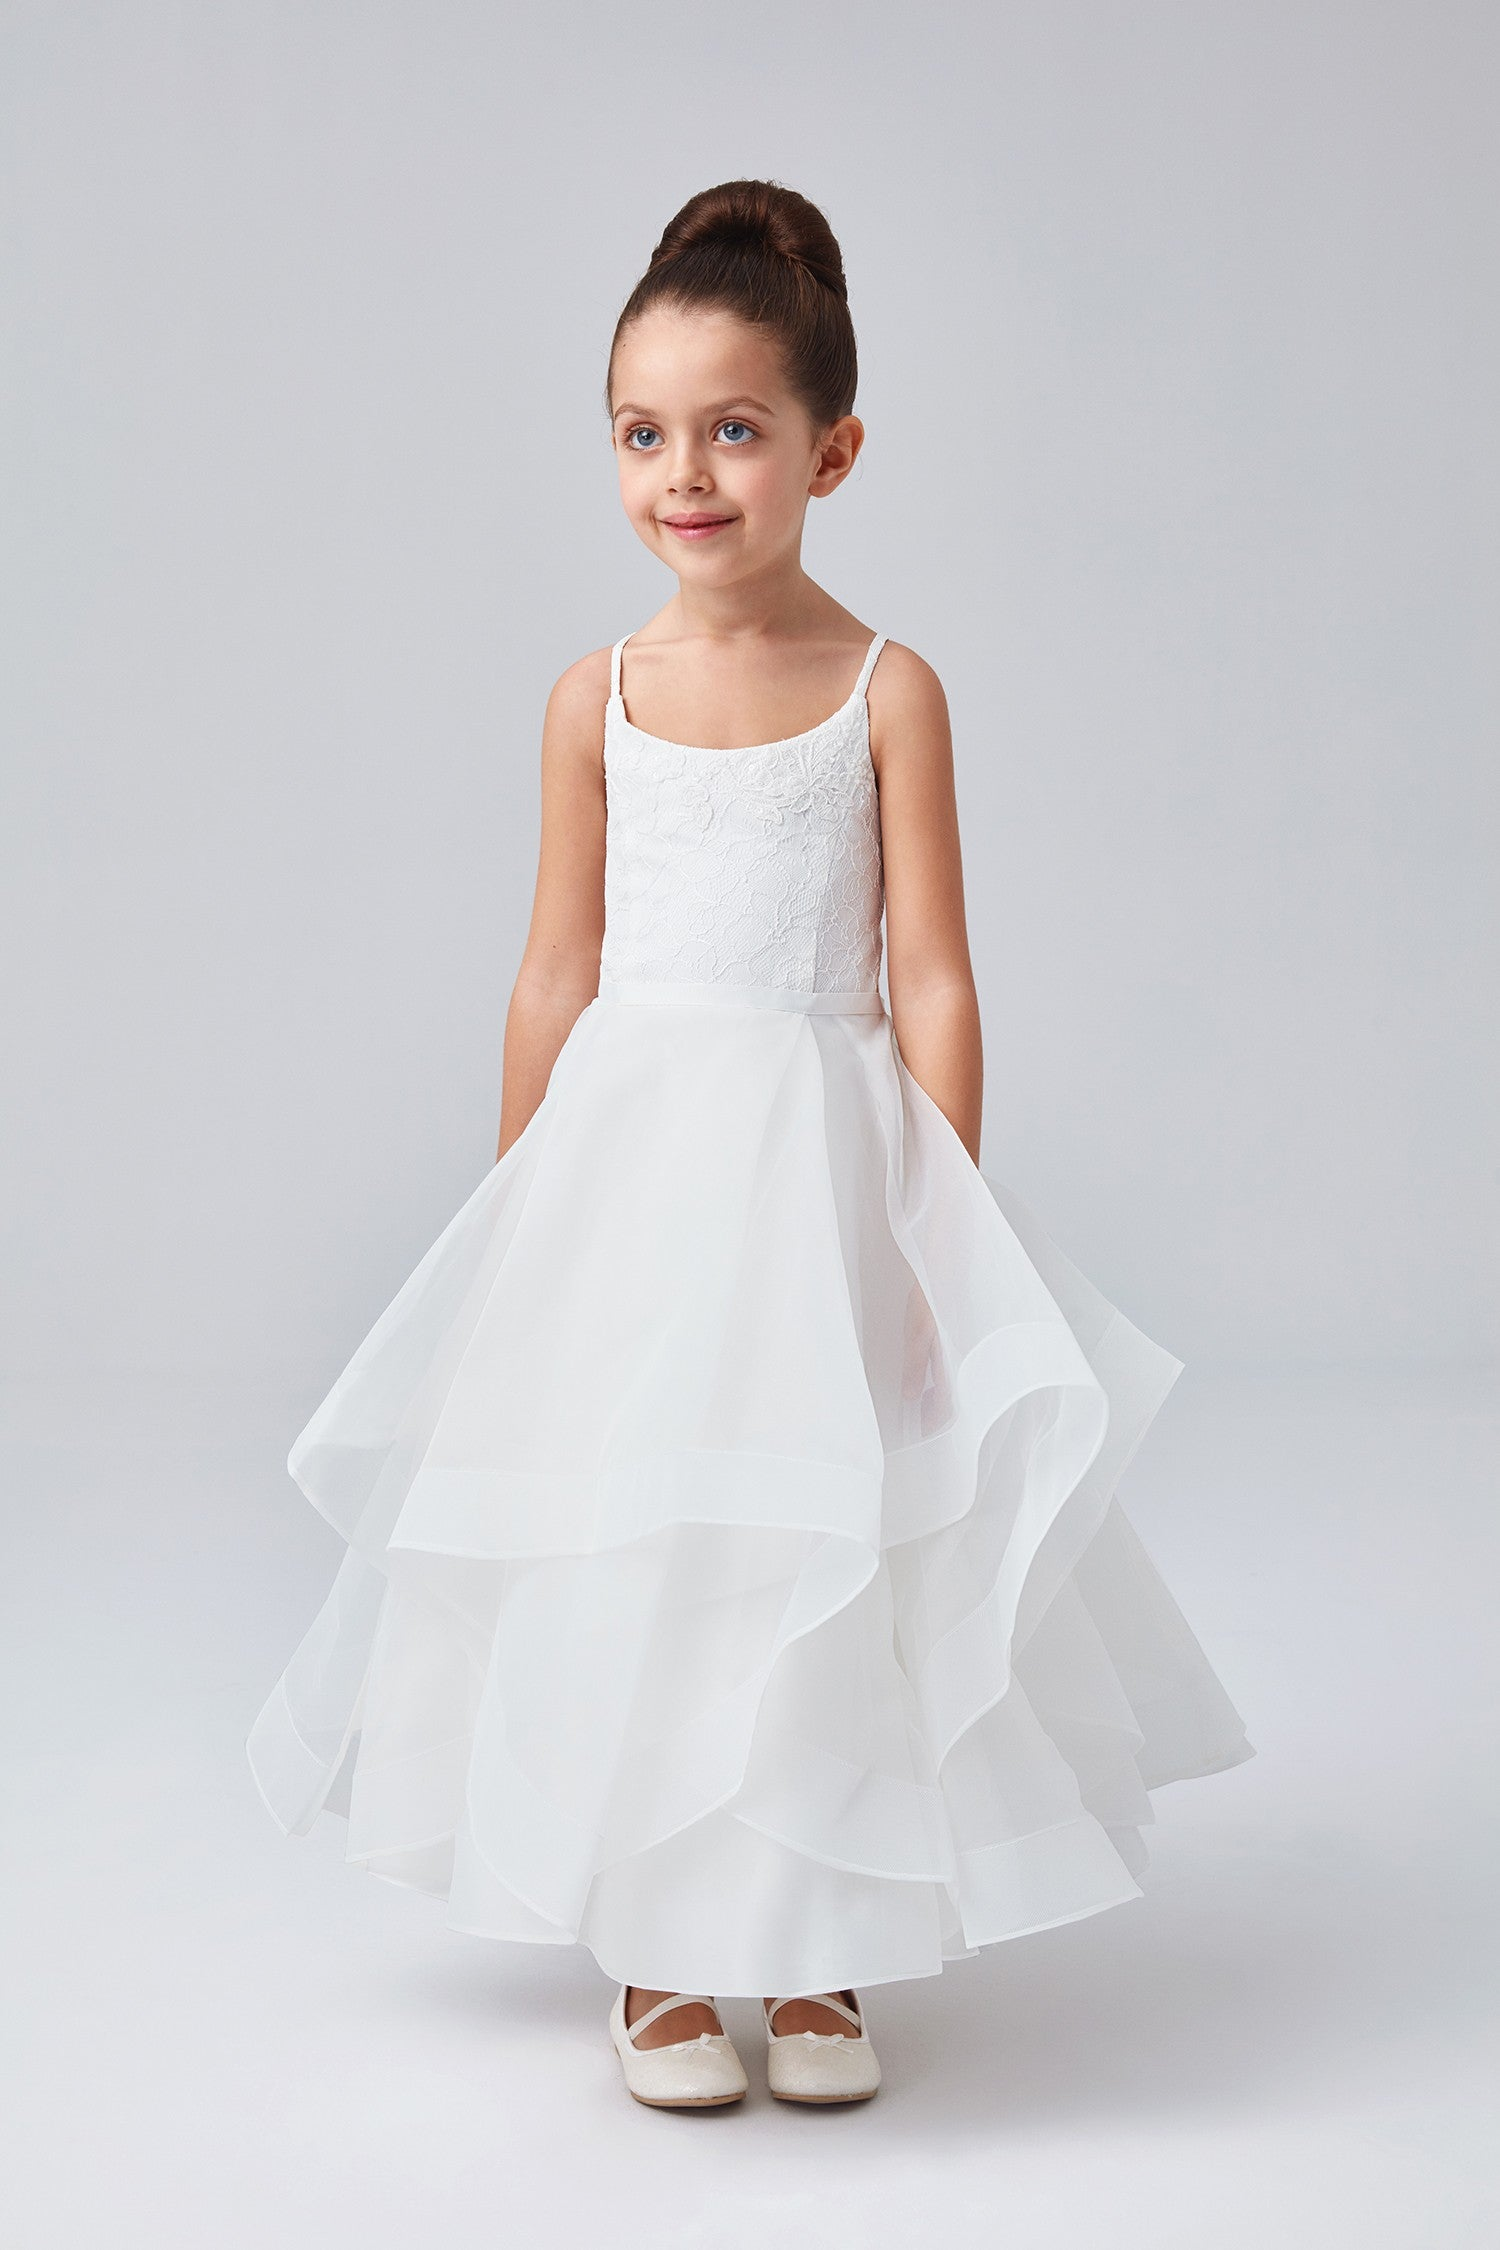 Lace and Tulle Flower Girl Dress with Full Skirt-WG1371